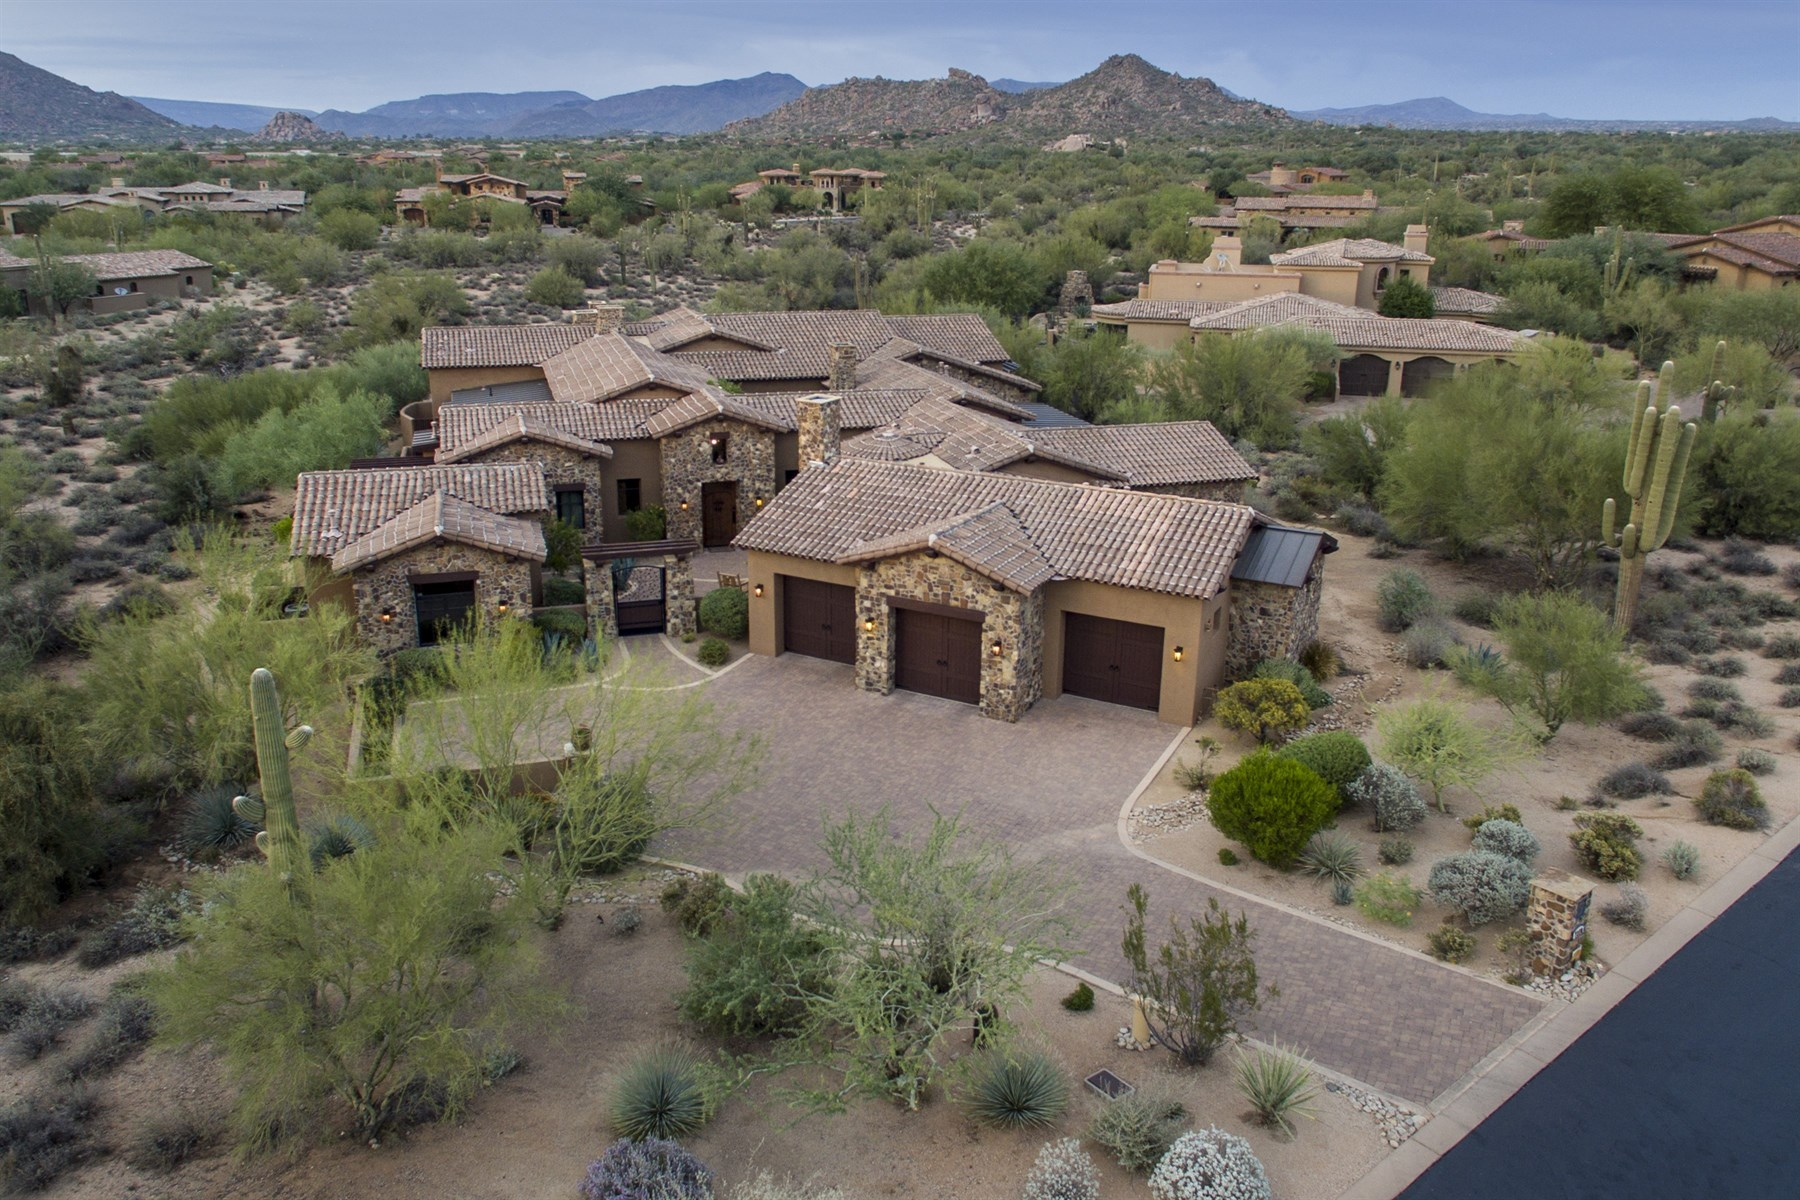 一戸建て のために 売買 アット Custom Home located on over an acre in Whisper Rock Estates 7378 E Lower Wash Pass Scottsdale, アリゾナ, 85266 アメリカ合衆国